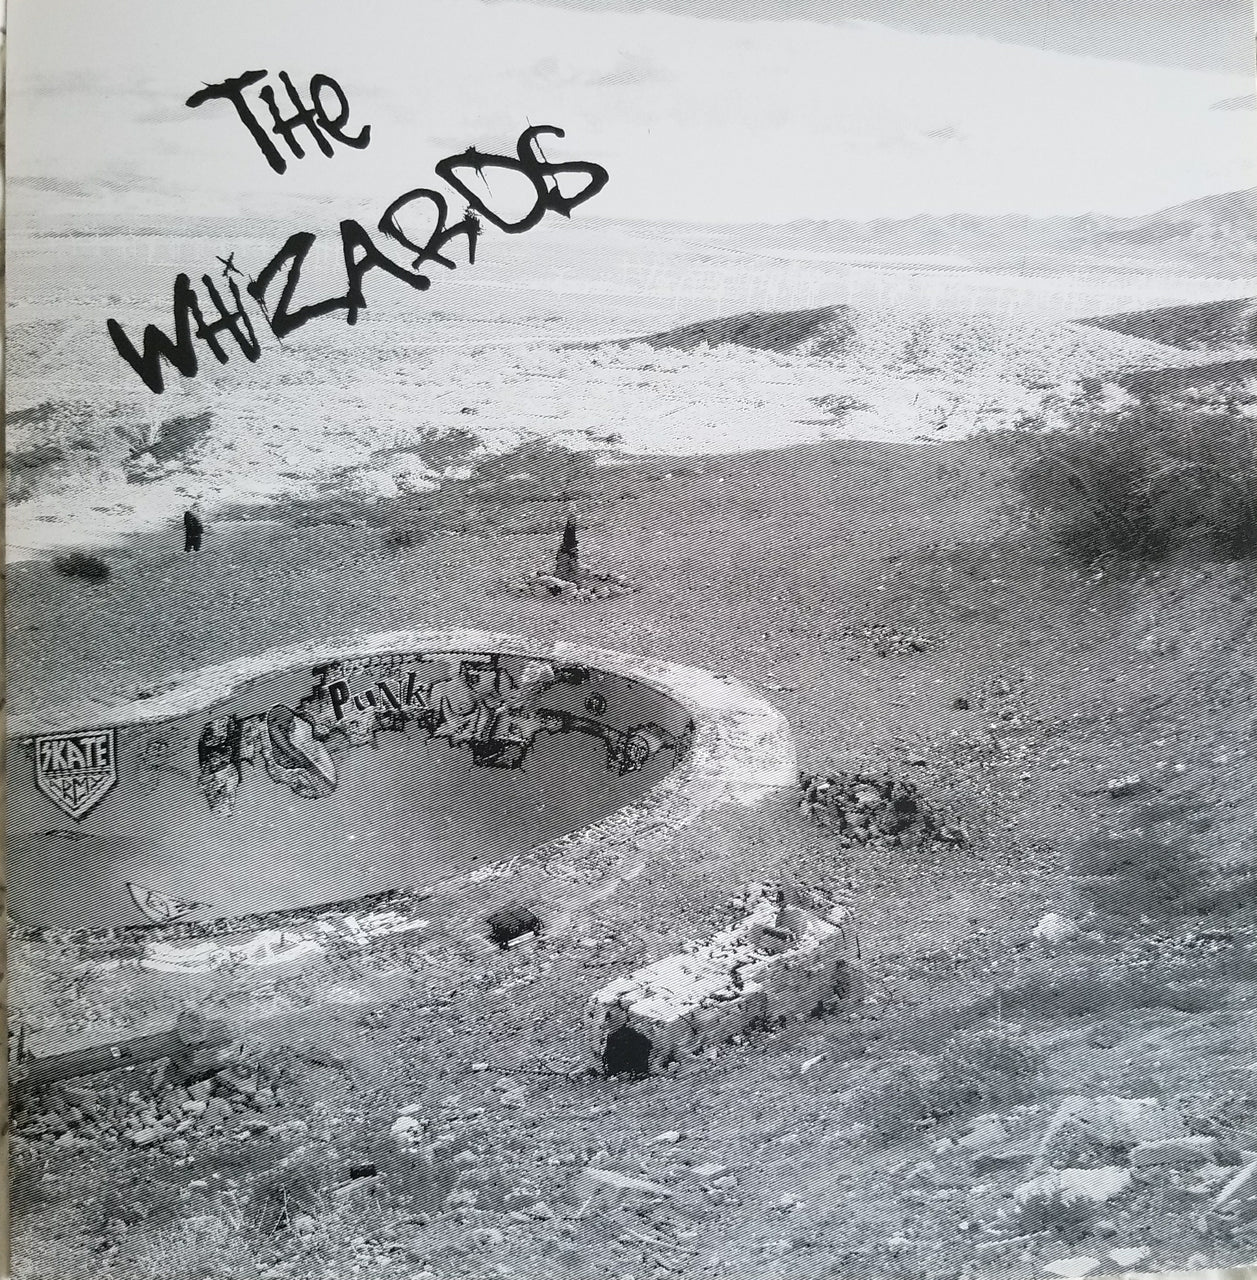 The Whizards